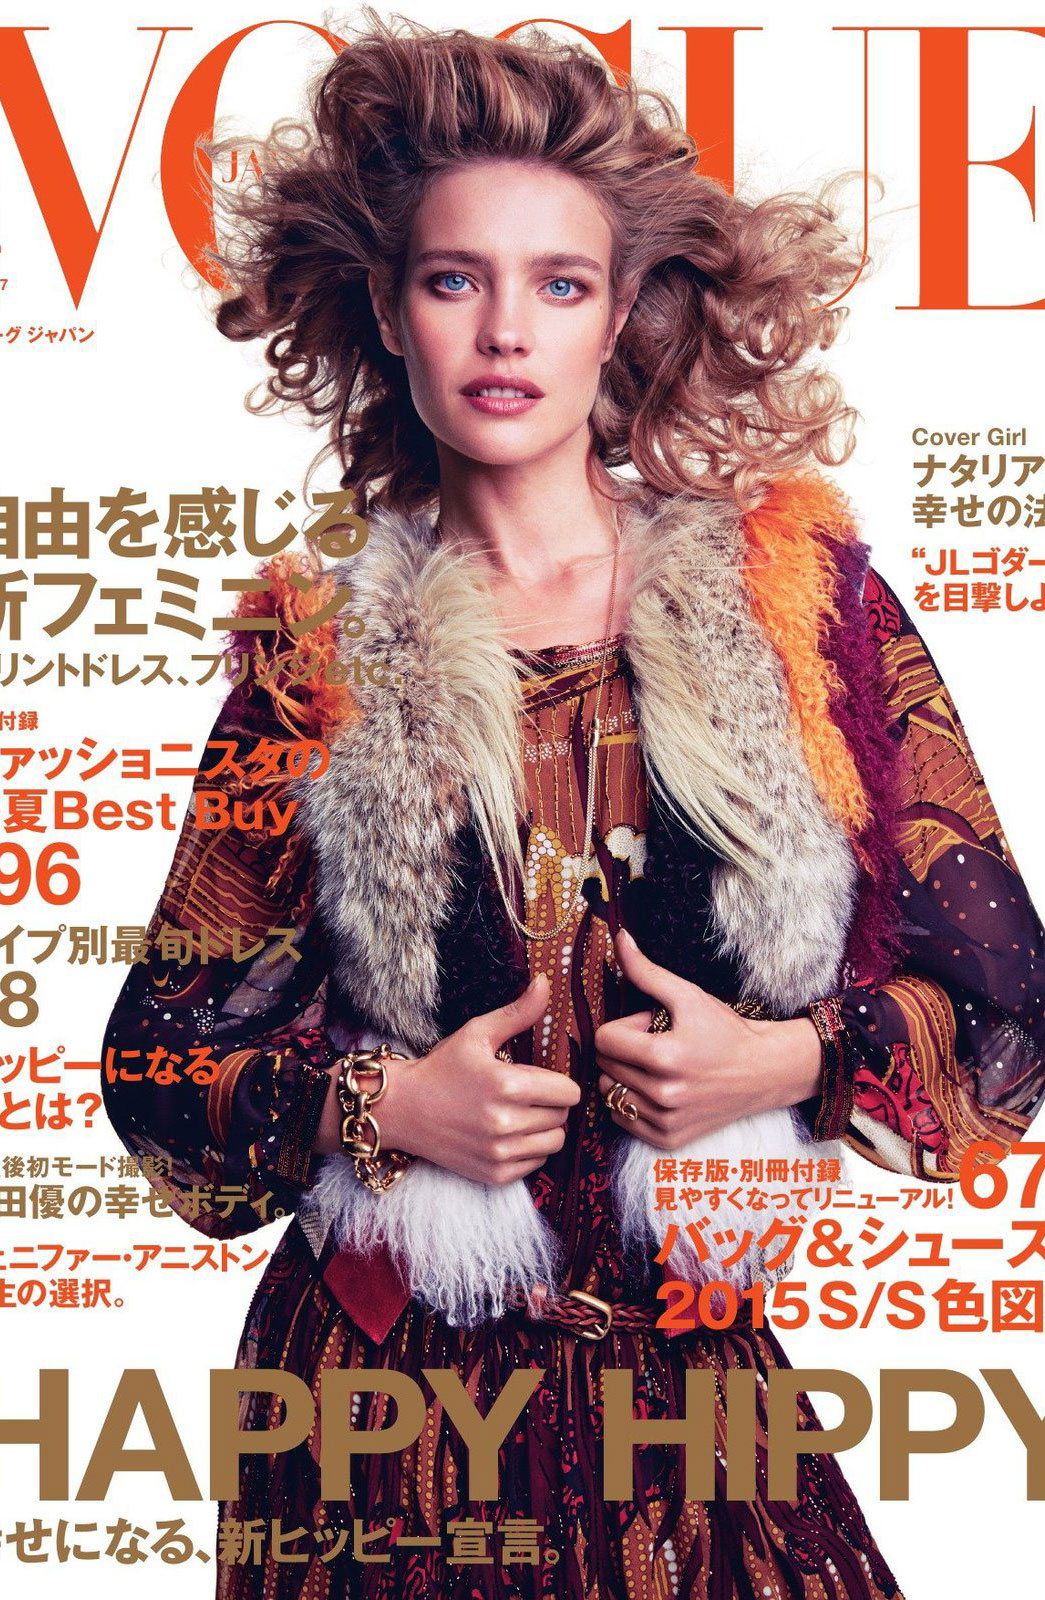 Natalia Vodianova in Vogue Japan March 2015